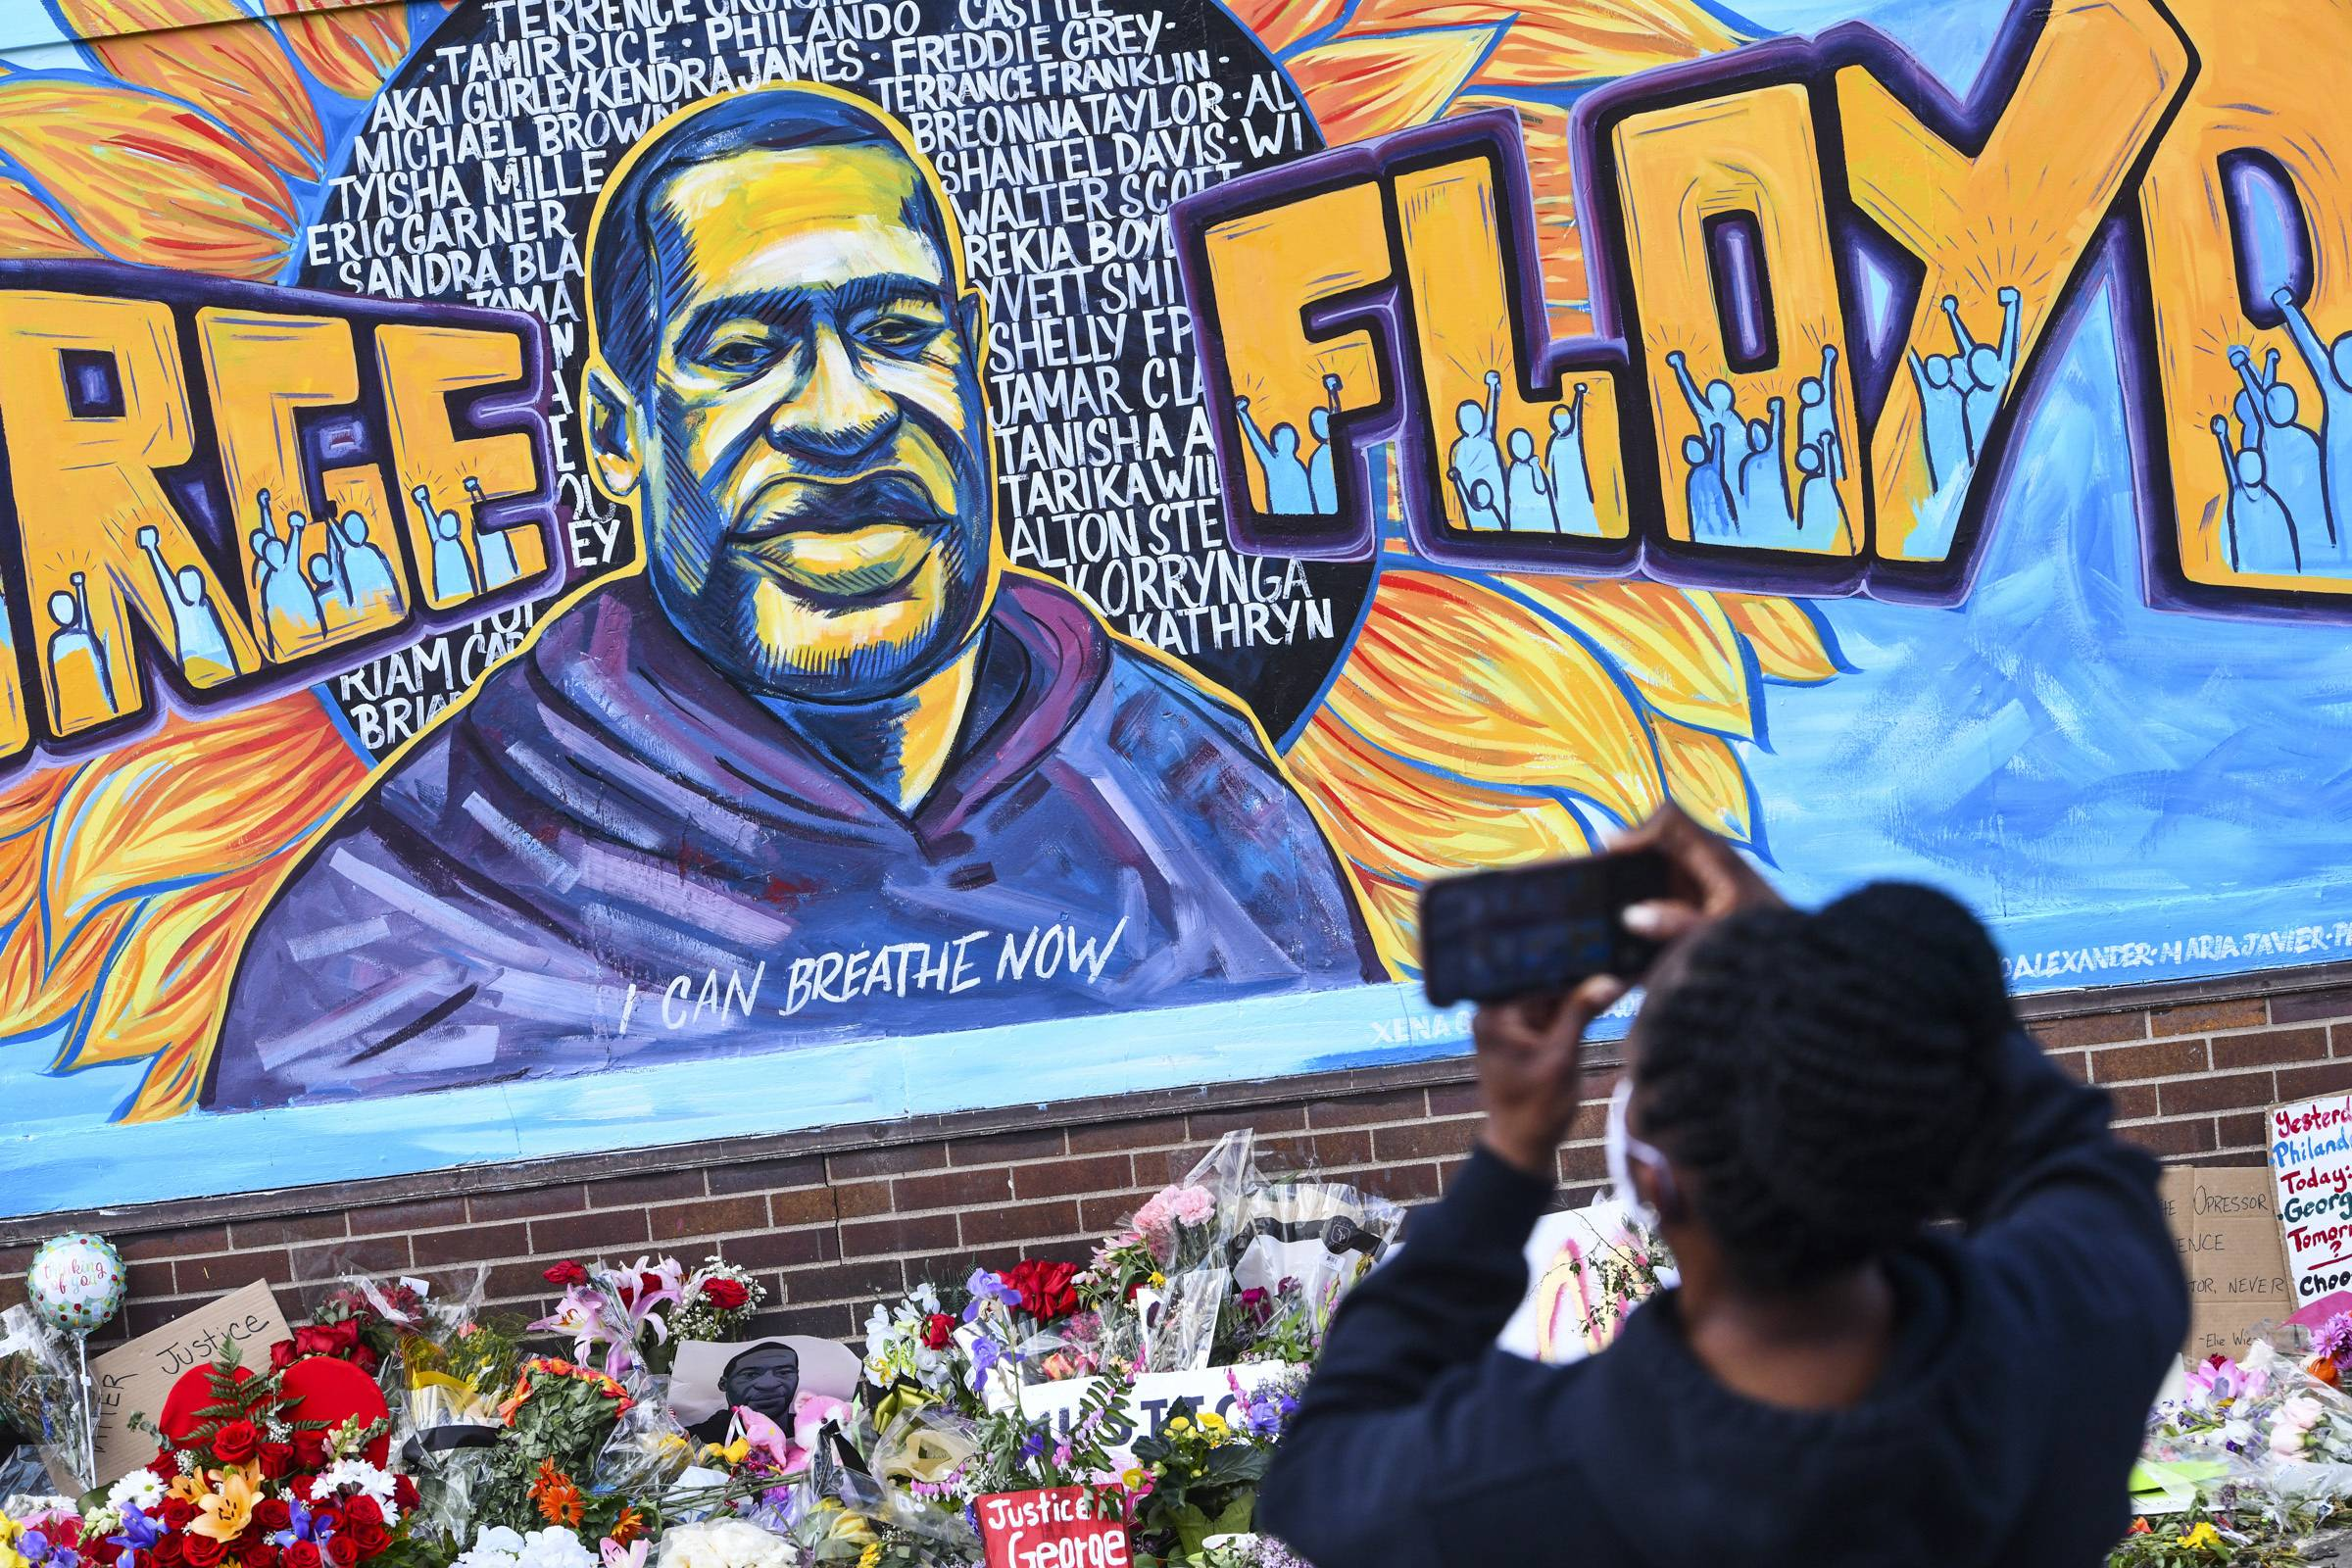 A person takes photographs of a mural in memory of George Floyd in Minneapolis on Friday.  | ST. CLOUD TIMES / VIA AP